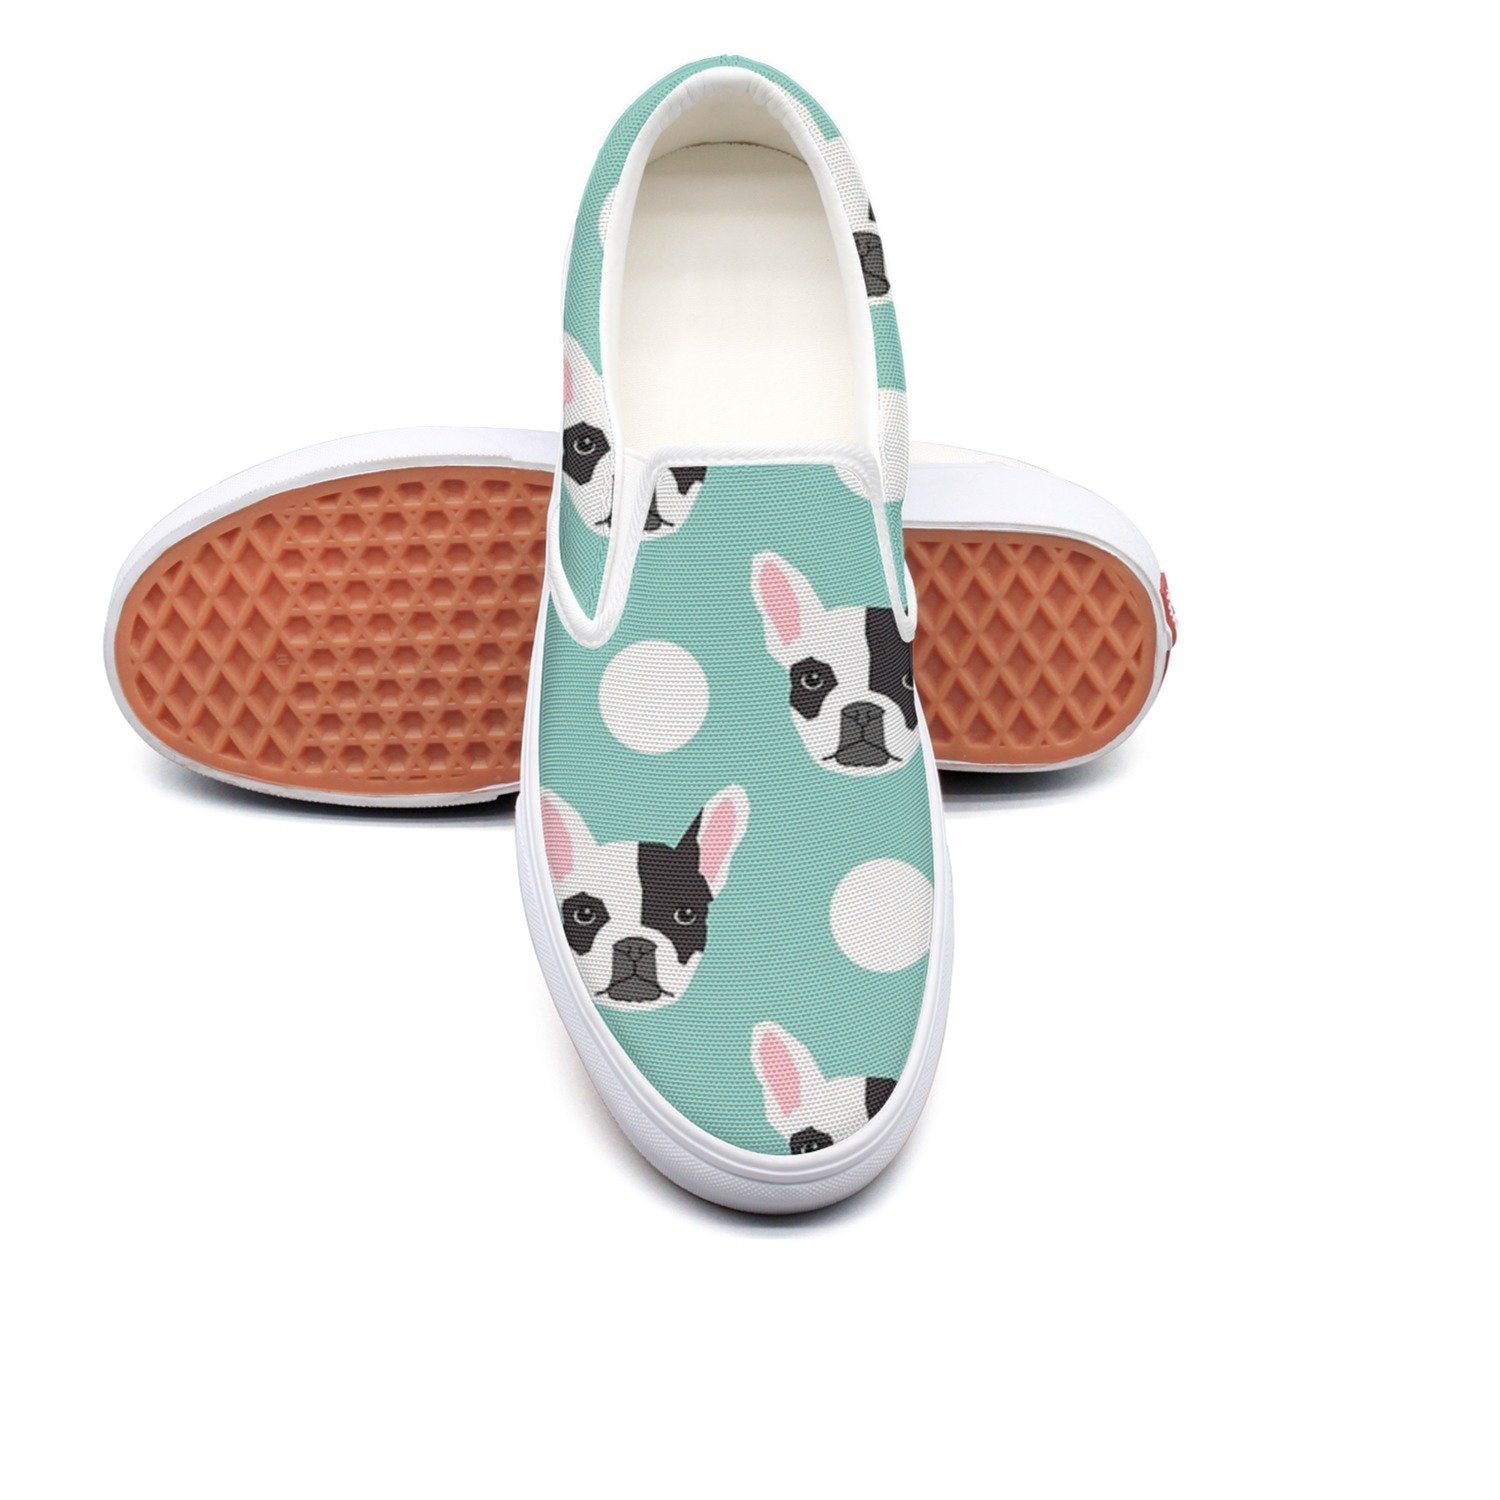 Lalige French Bulldog Pattern Women's Cute Canvas Slip-on Travel Shoes